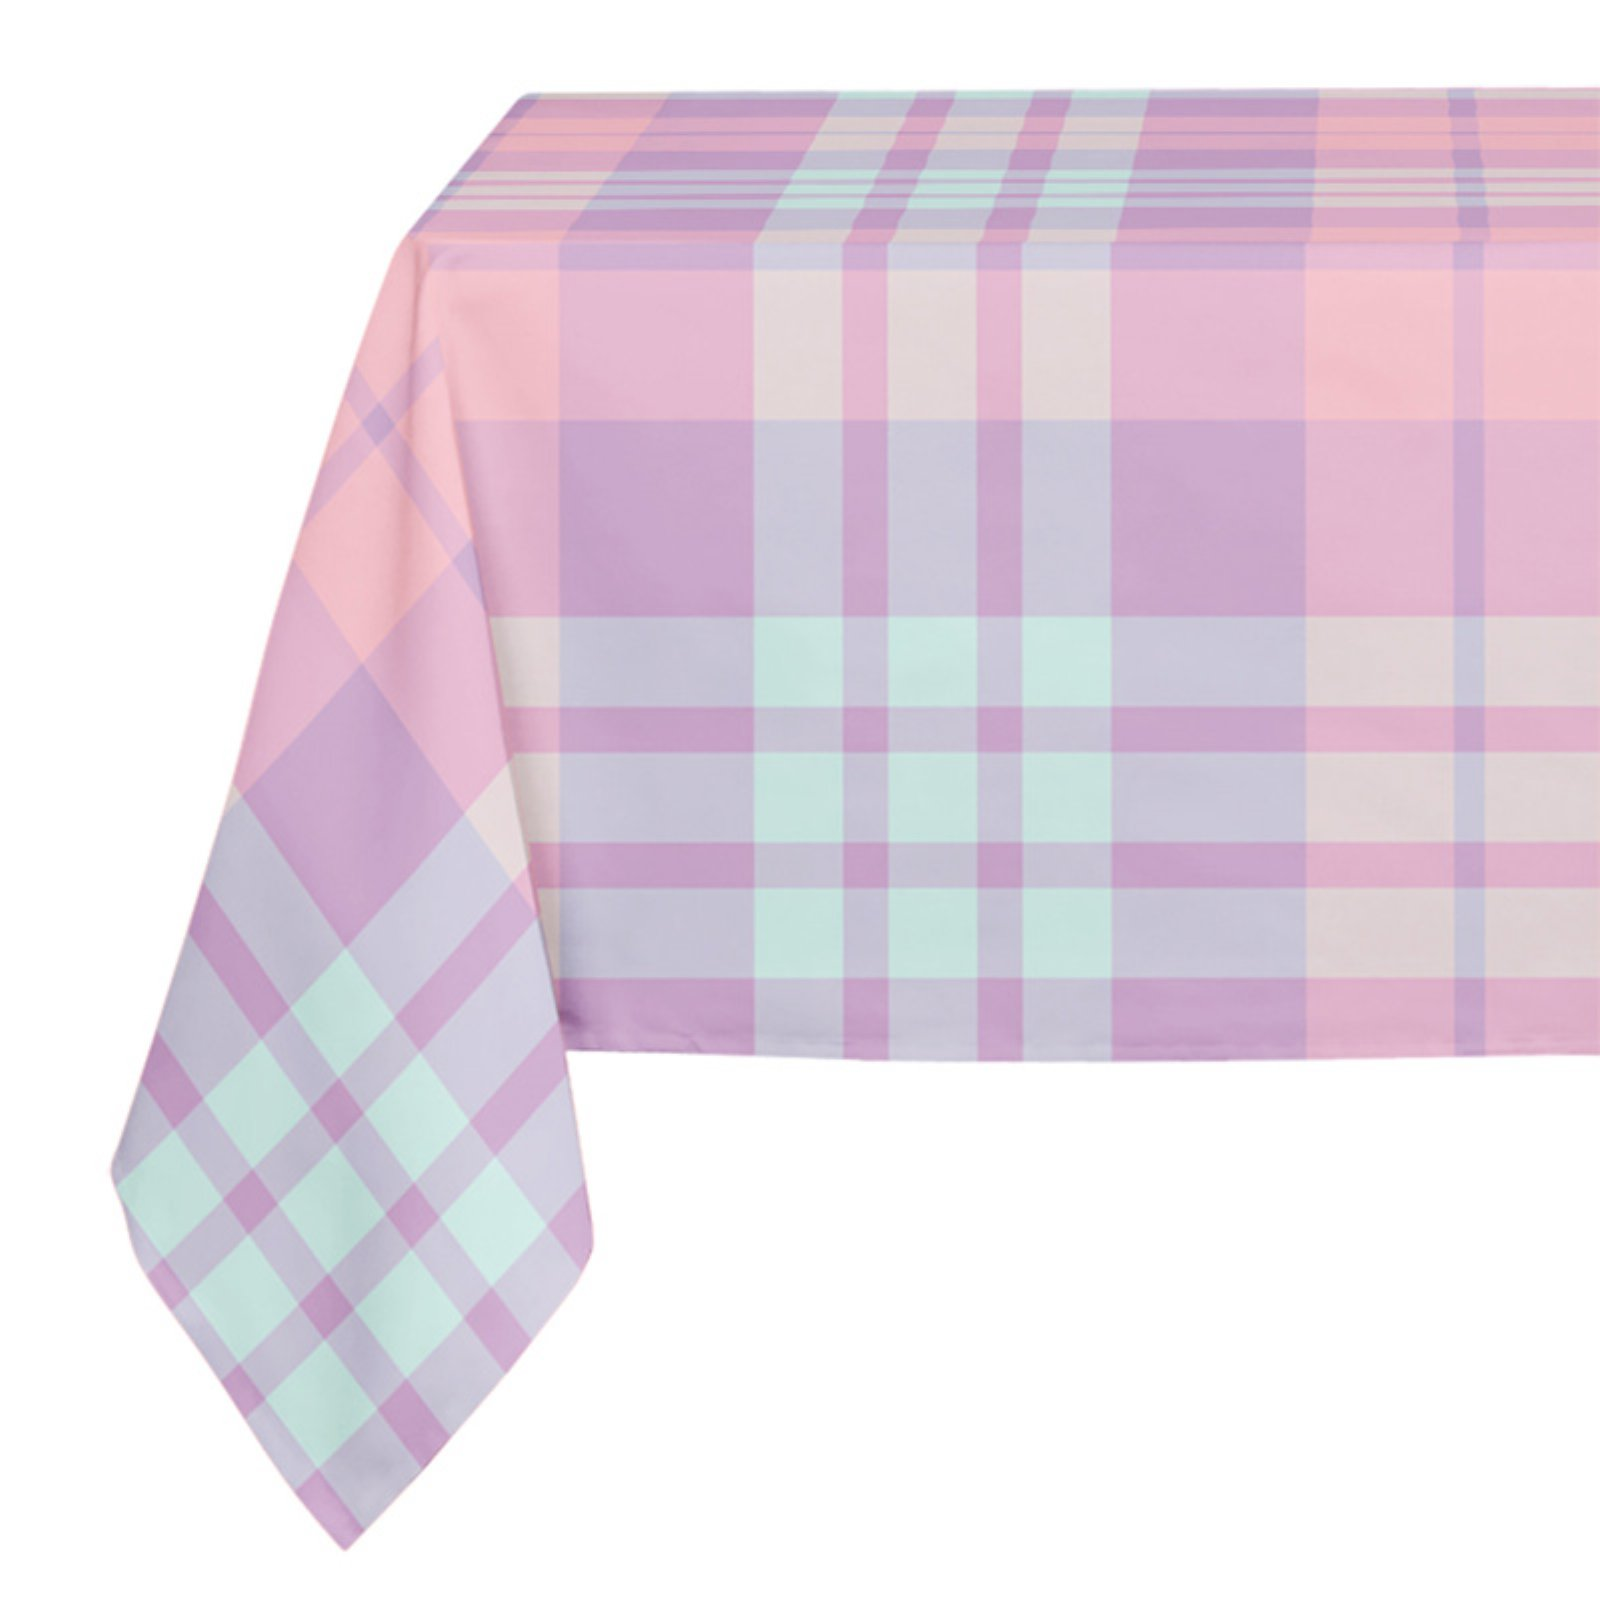 Superbe Kavka Designs Pink Pastel Plaid Tablecloth